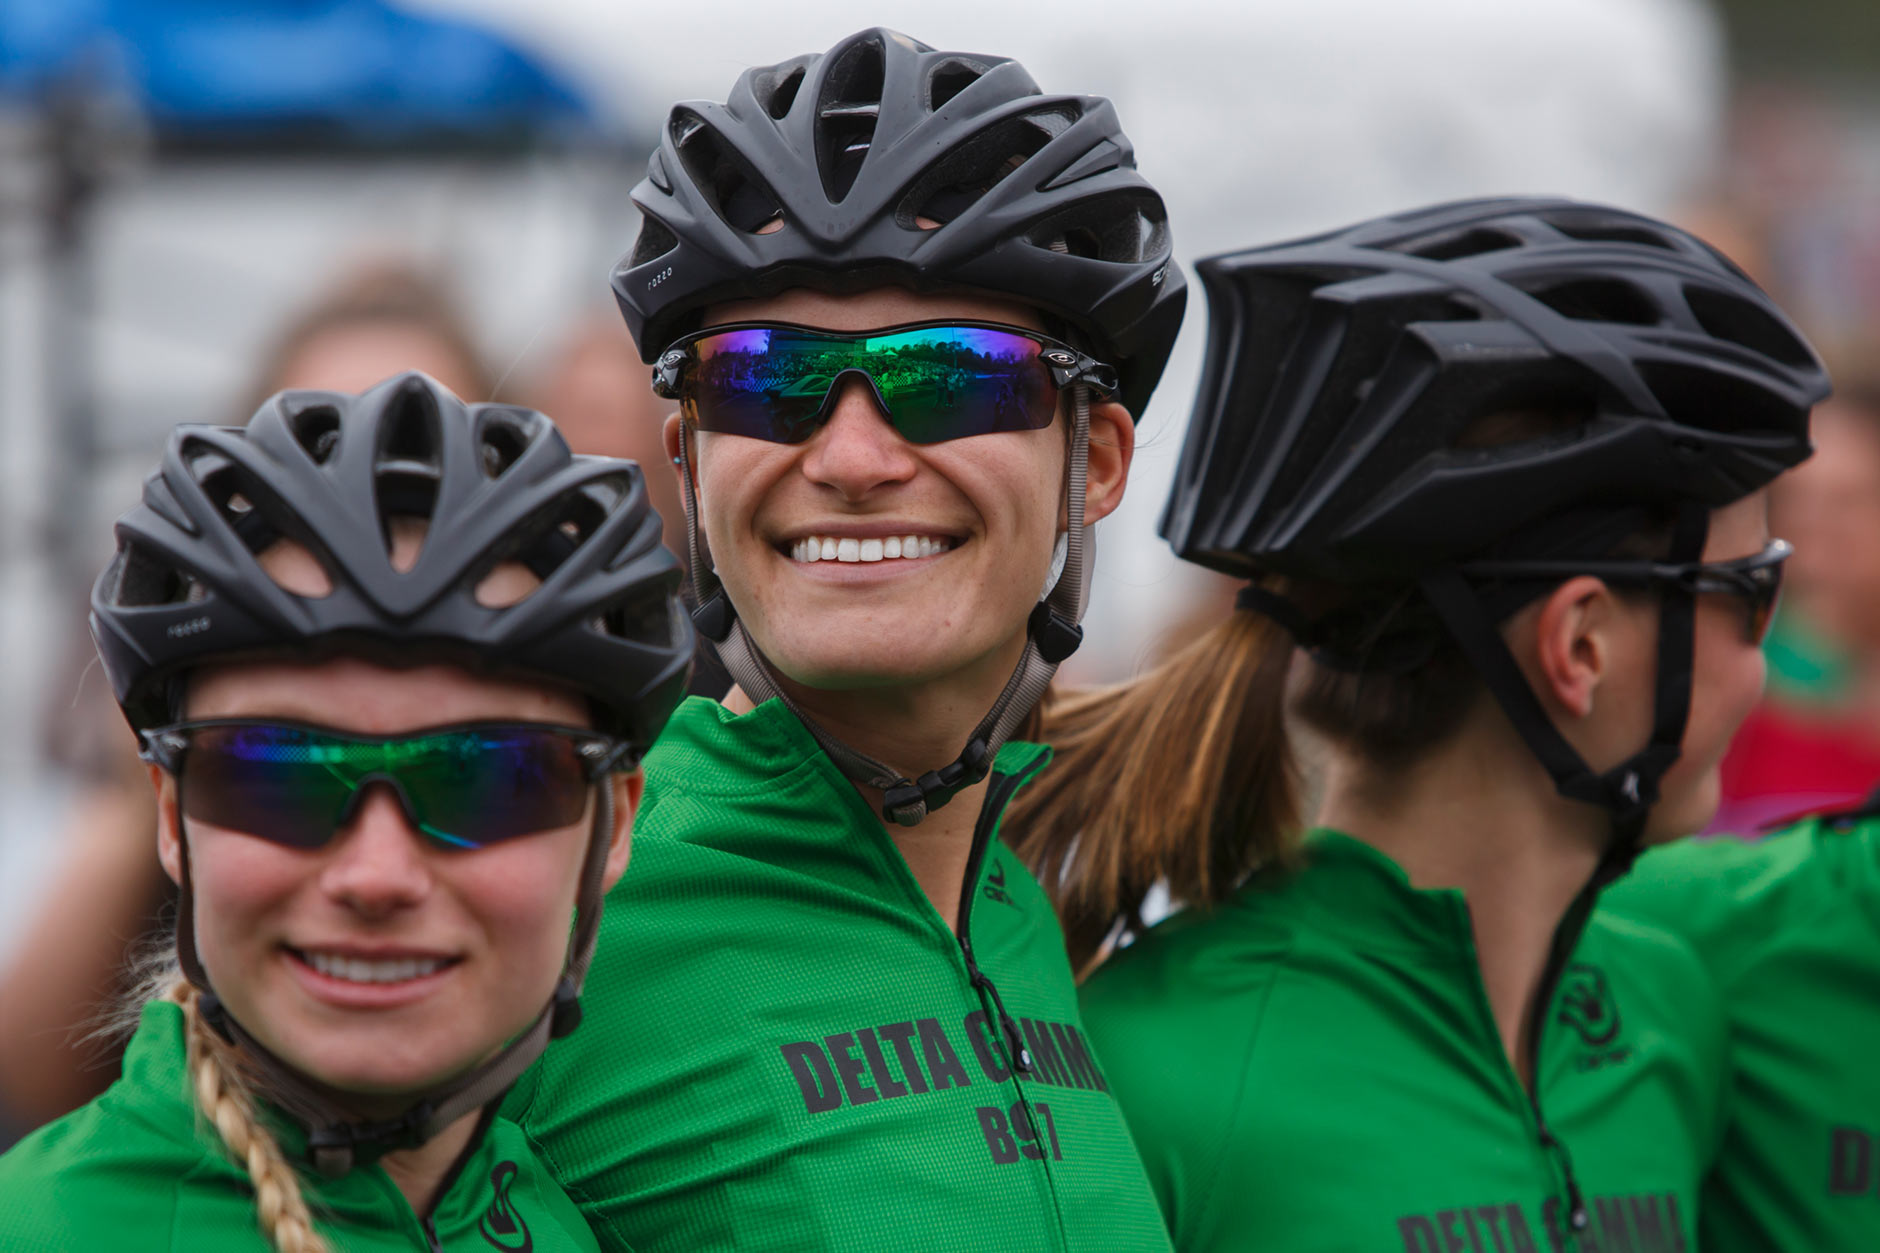 Delta Gamma's Kristen Bignal, center, smiles as she looks to the crowd during team introductions before the Women's Little 500 at Bill Armstrong Stadium on Friday, April 21, 2017. (James Brosher/IU Communications)